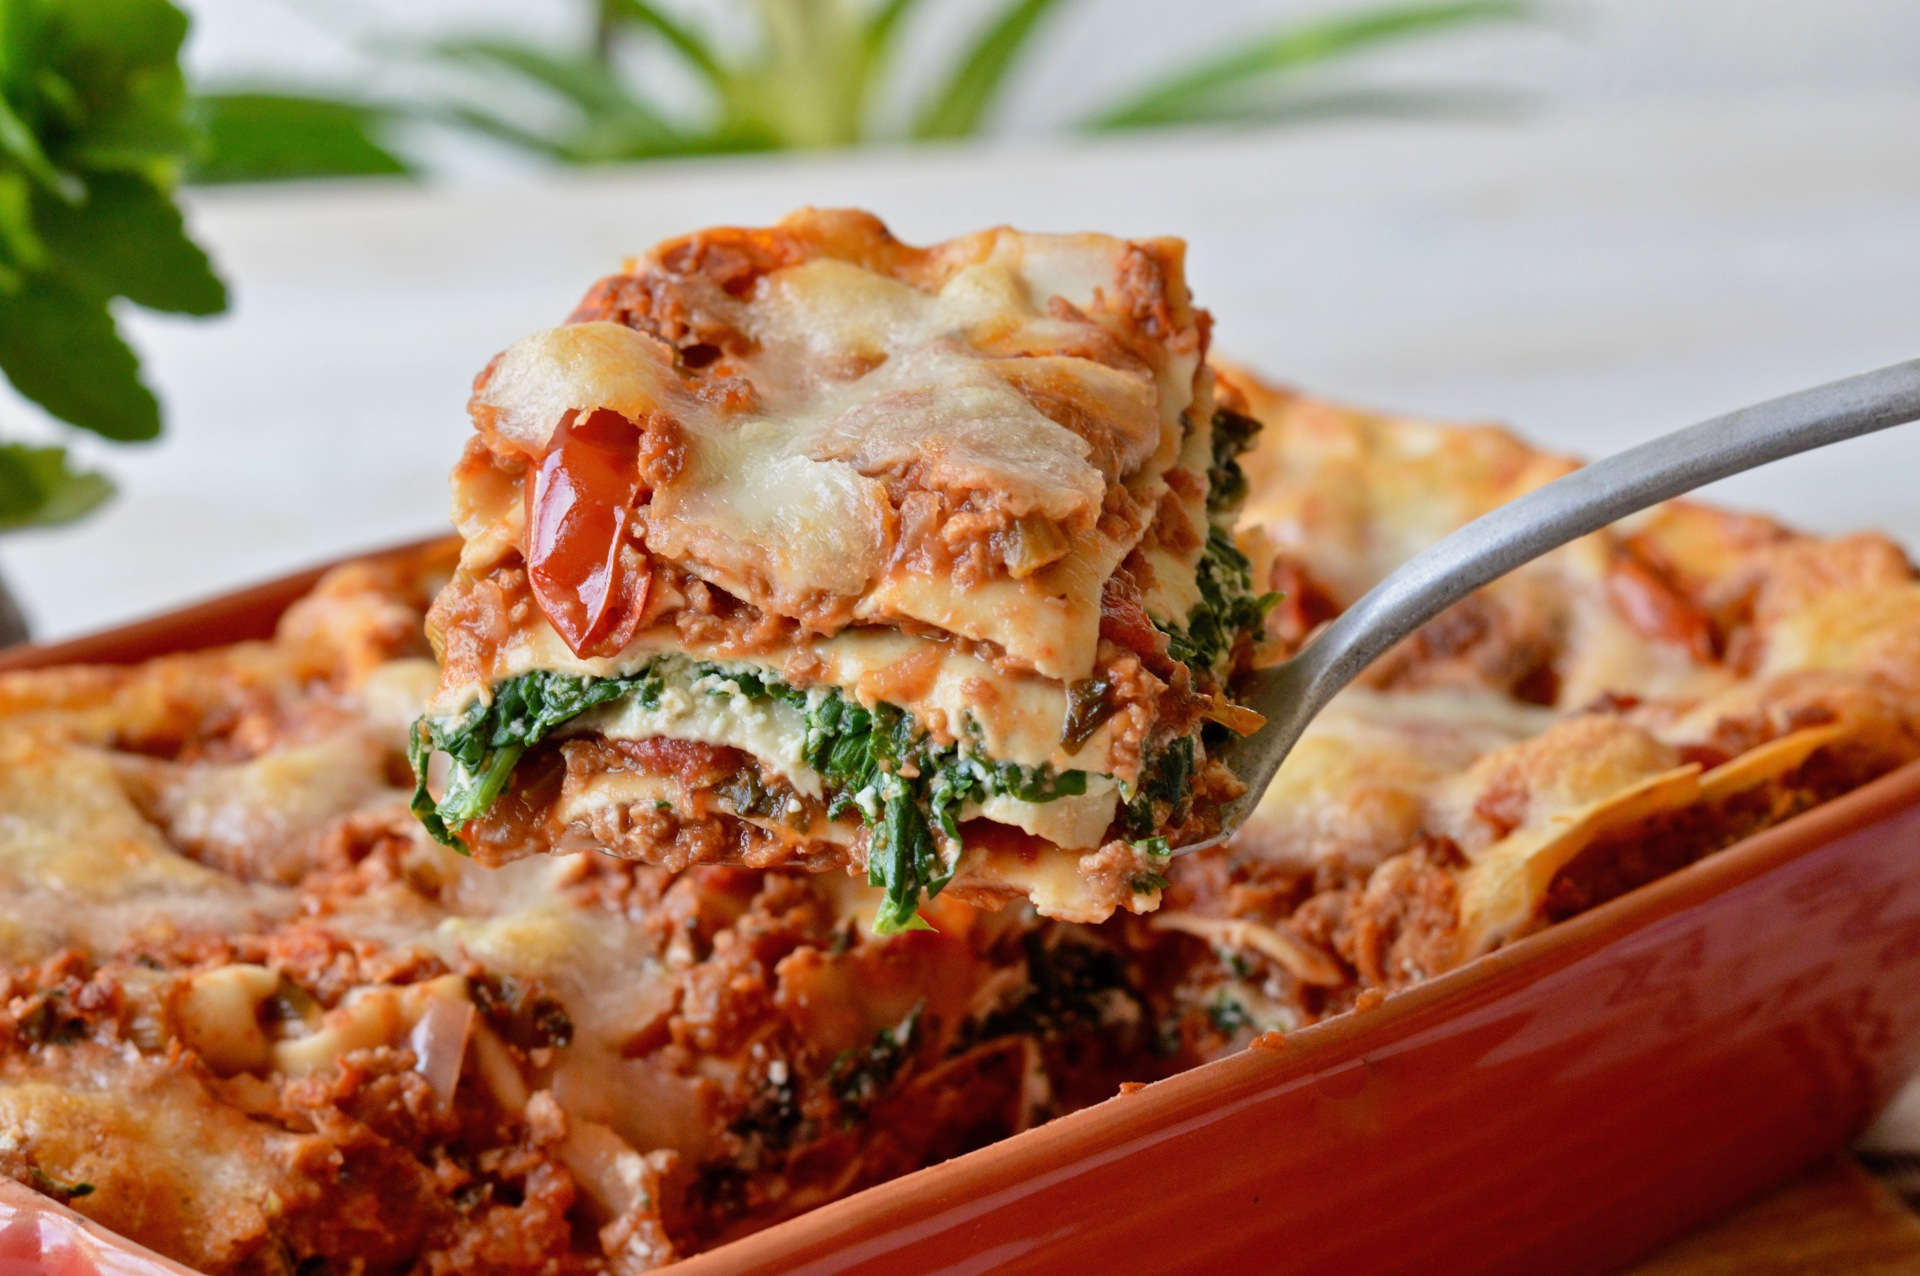 Lasagna vegetarian or vegan